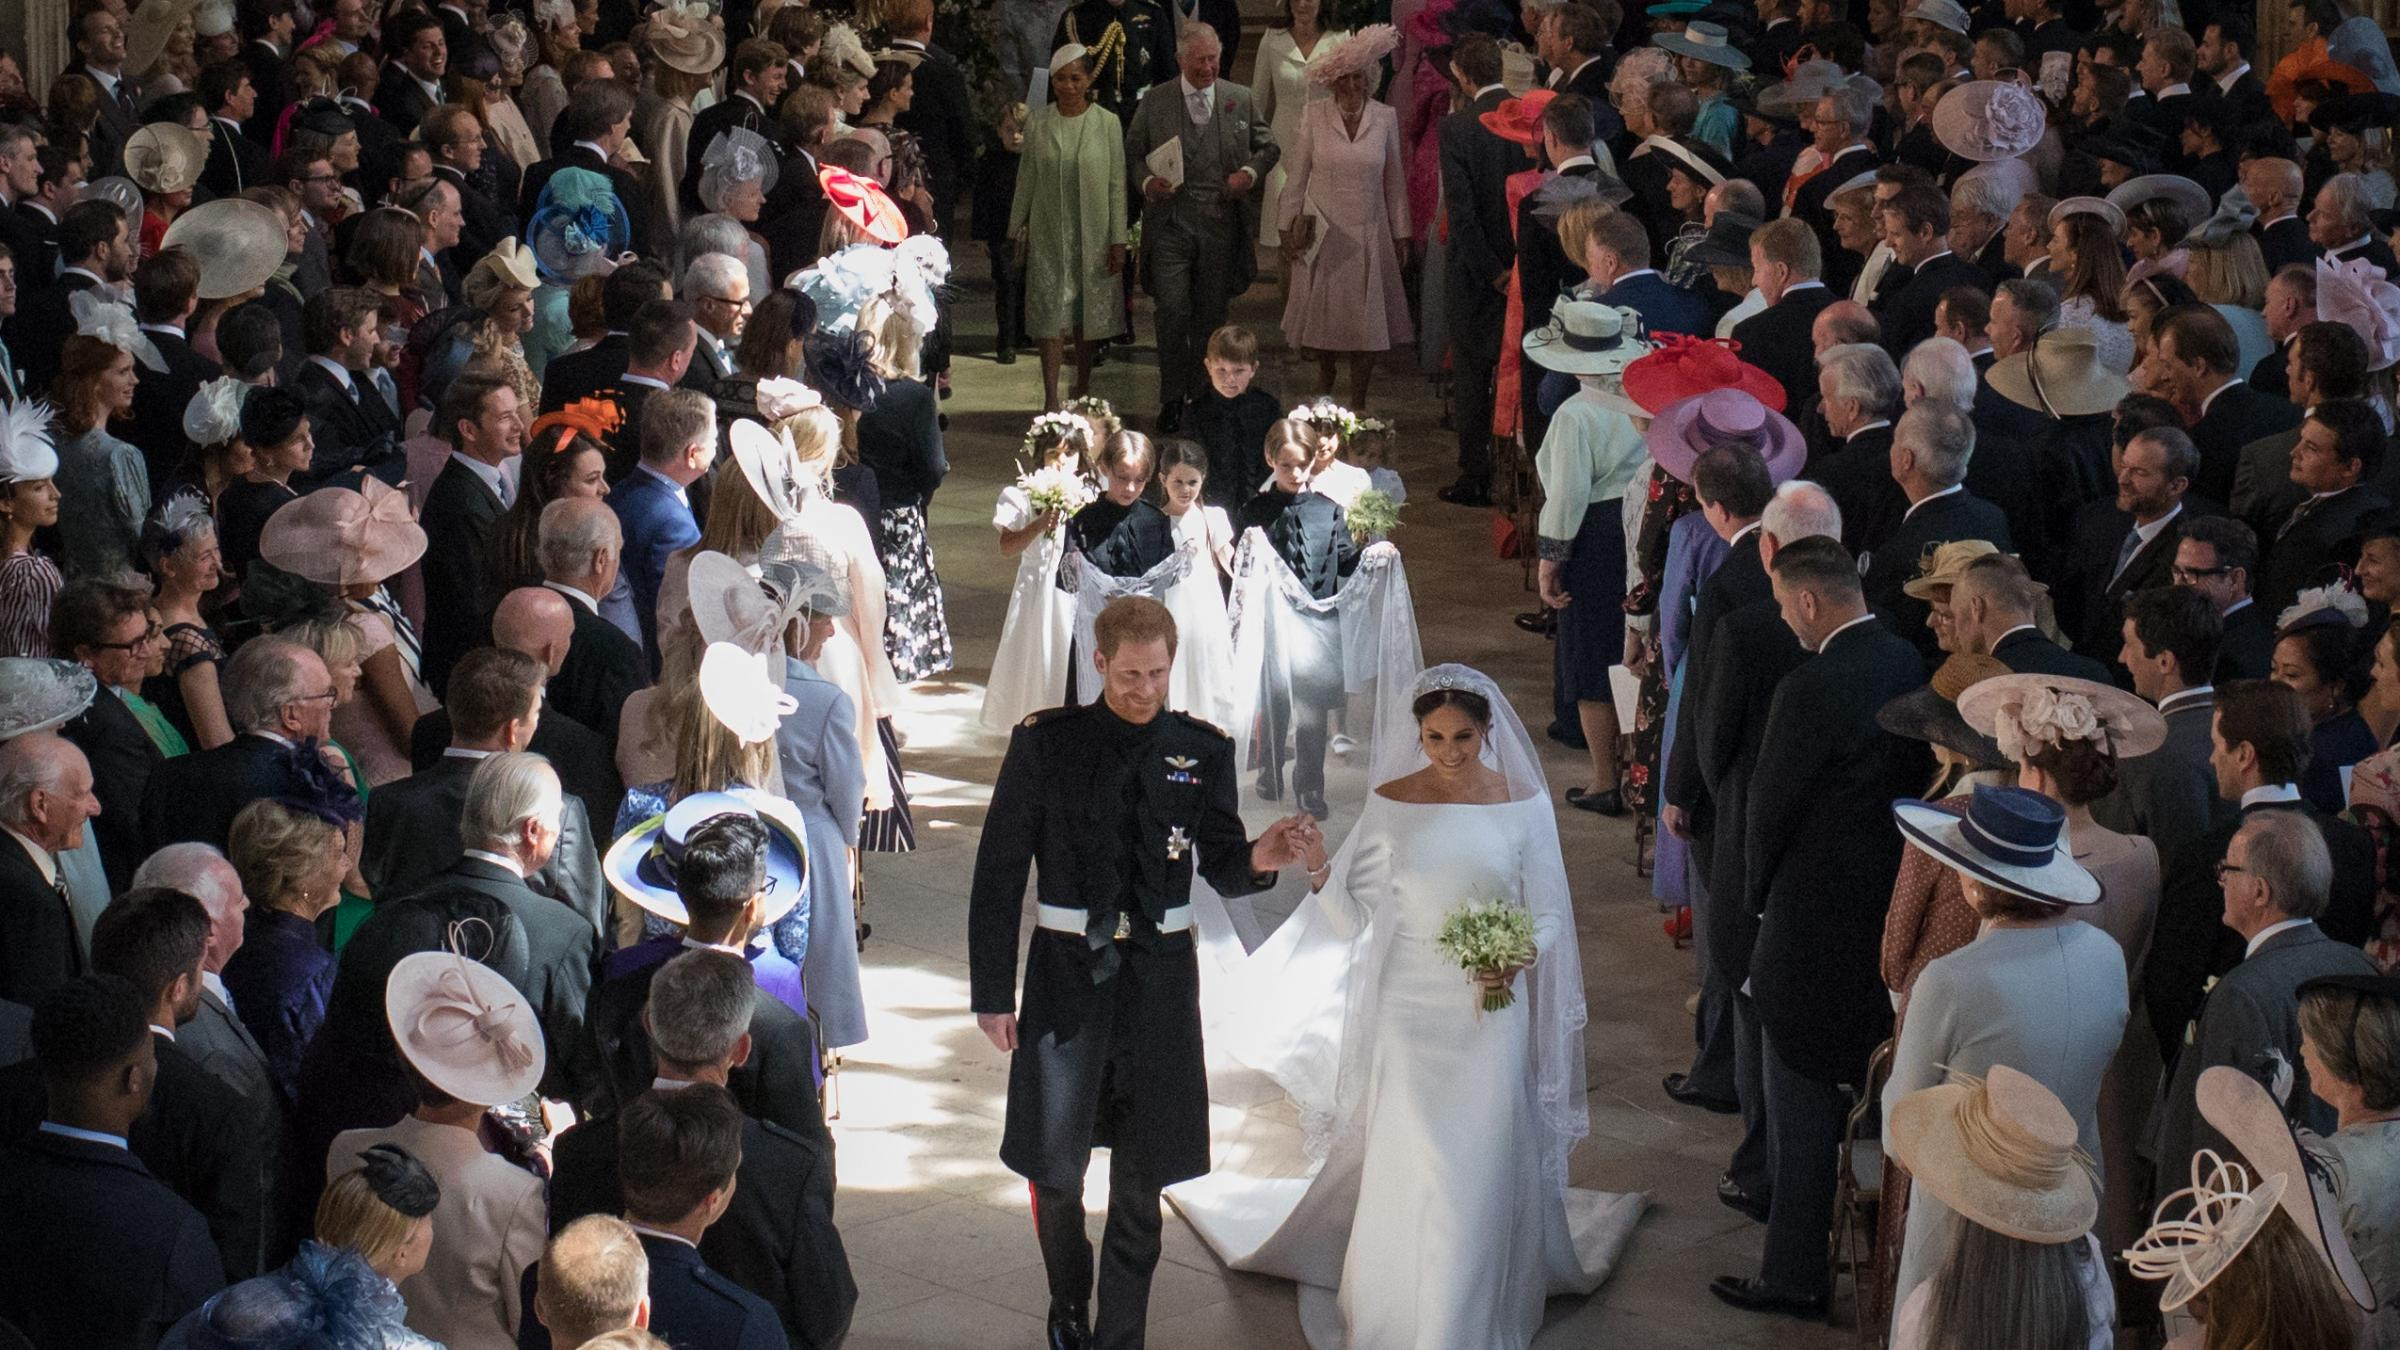 The royal wedding: Audience peaks with 13.1 million on BBC1